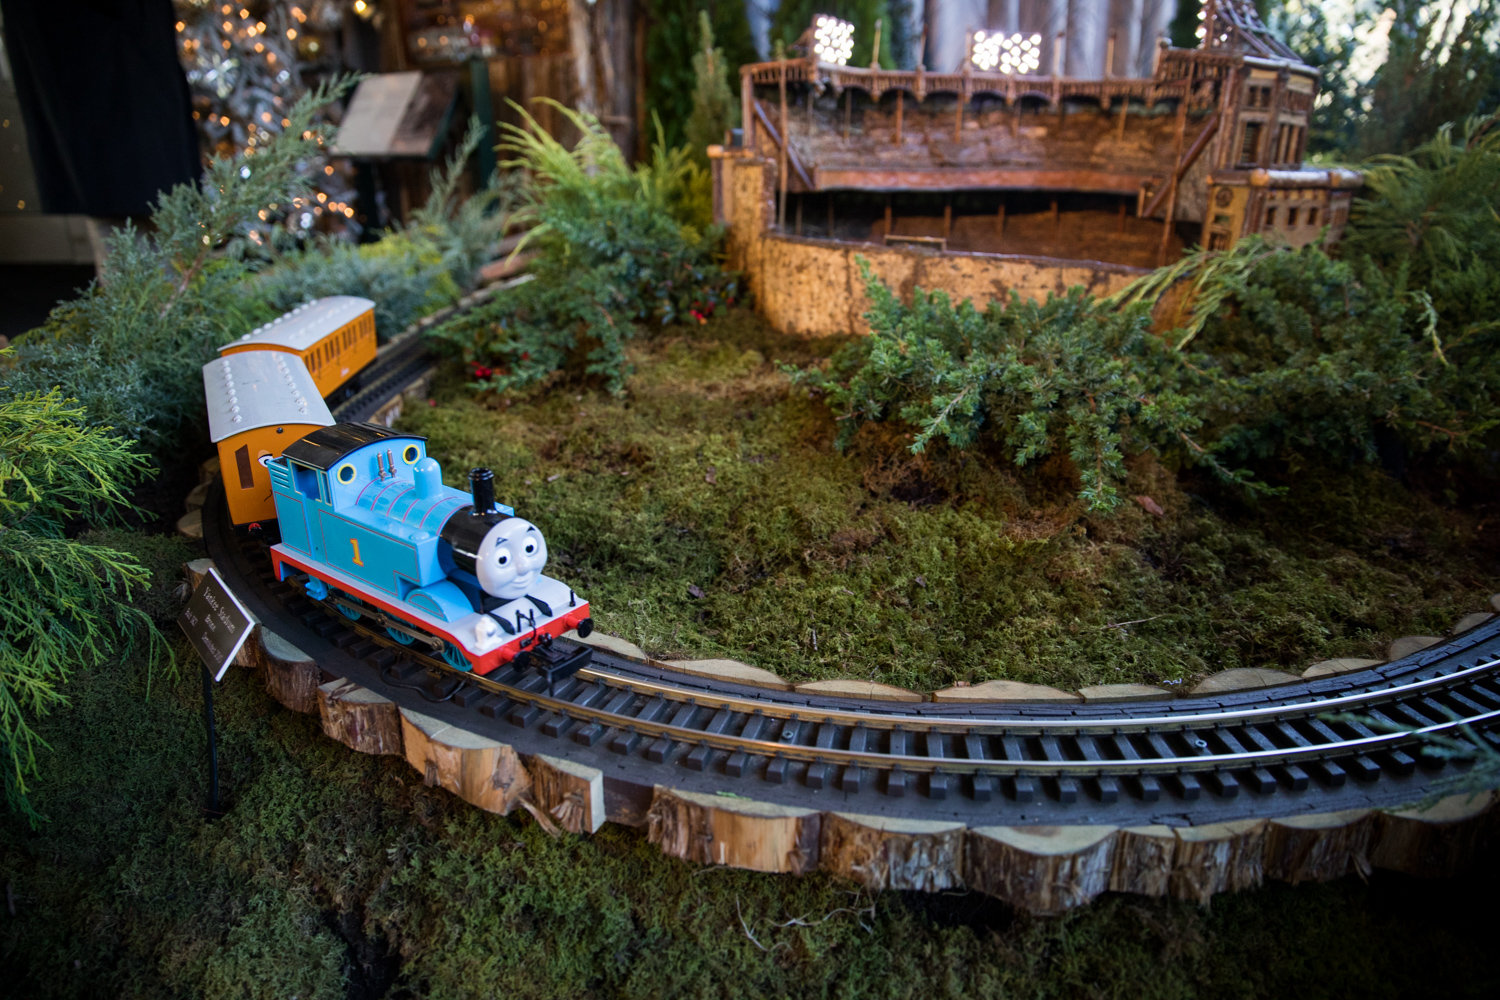 Thomas the Tank Engine makes its way around a replica of Yankee Stadium in the Holiday Train Show at the New York Botanical Garden.